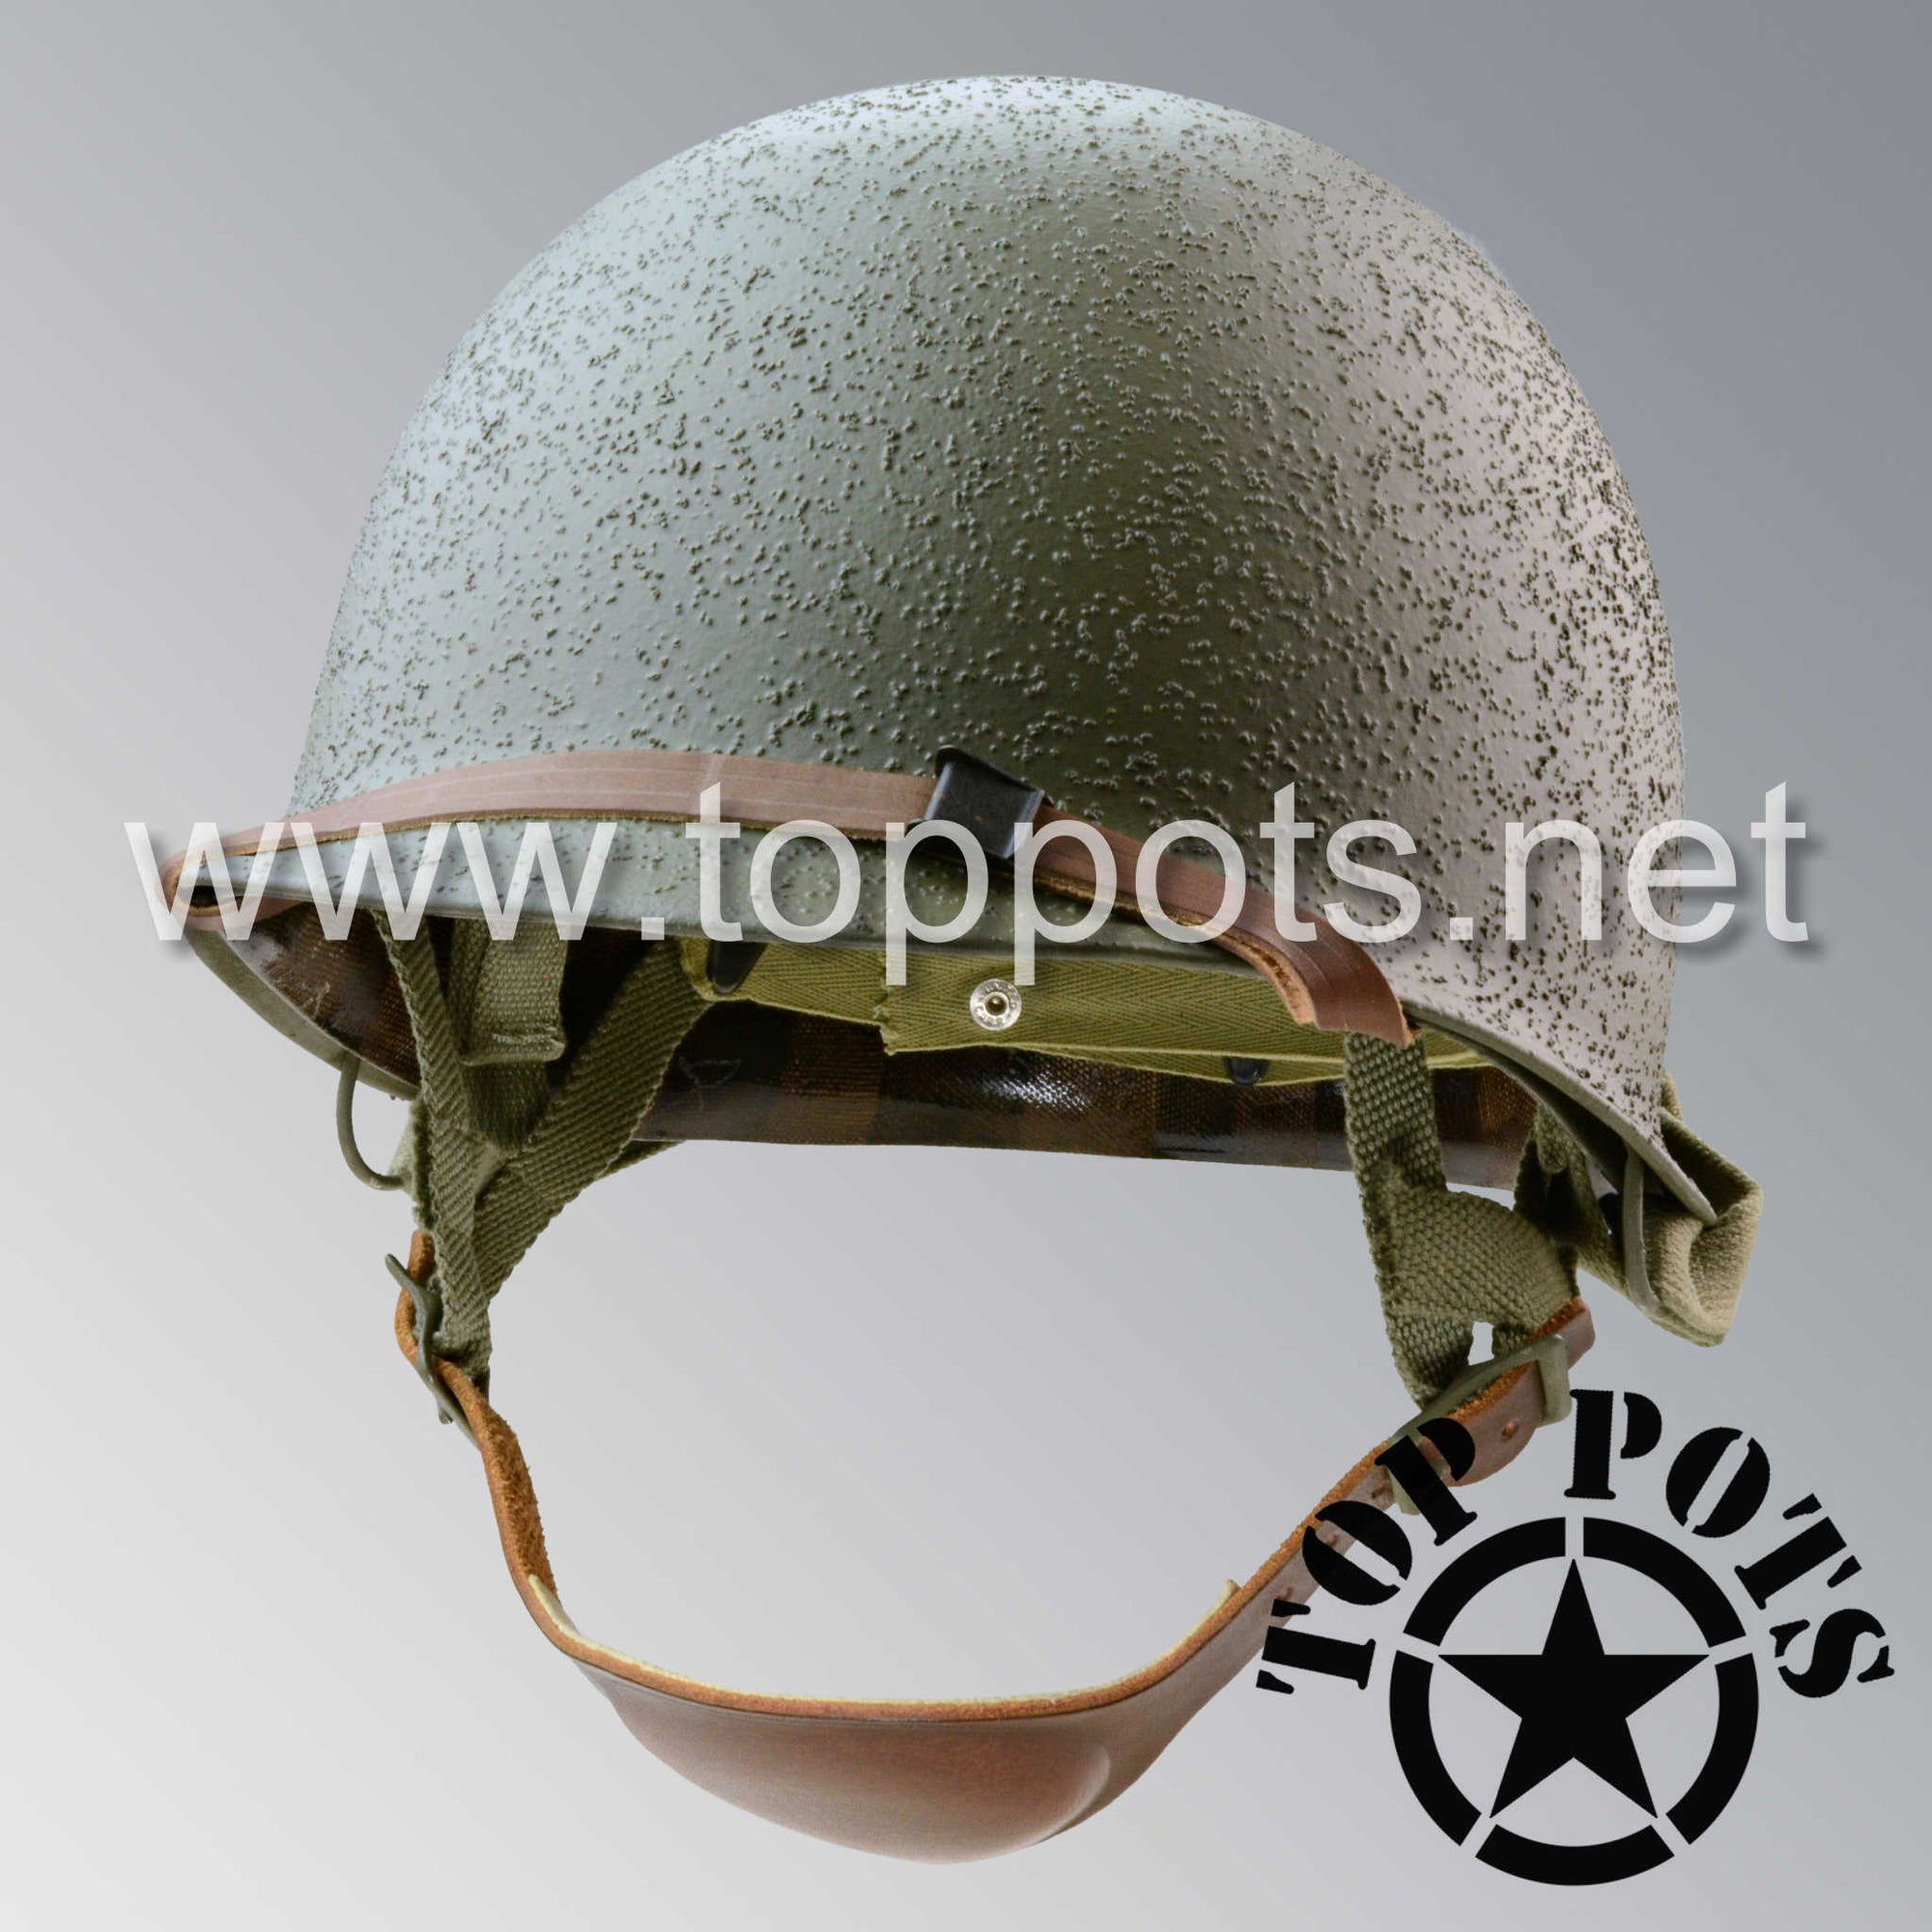 Image 1 of WWII US Army Restored Original M2 Paratrooper Airborne Helmet D Bale Shell and Liner with Westinghouse A Straps